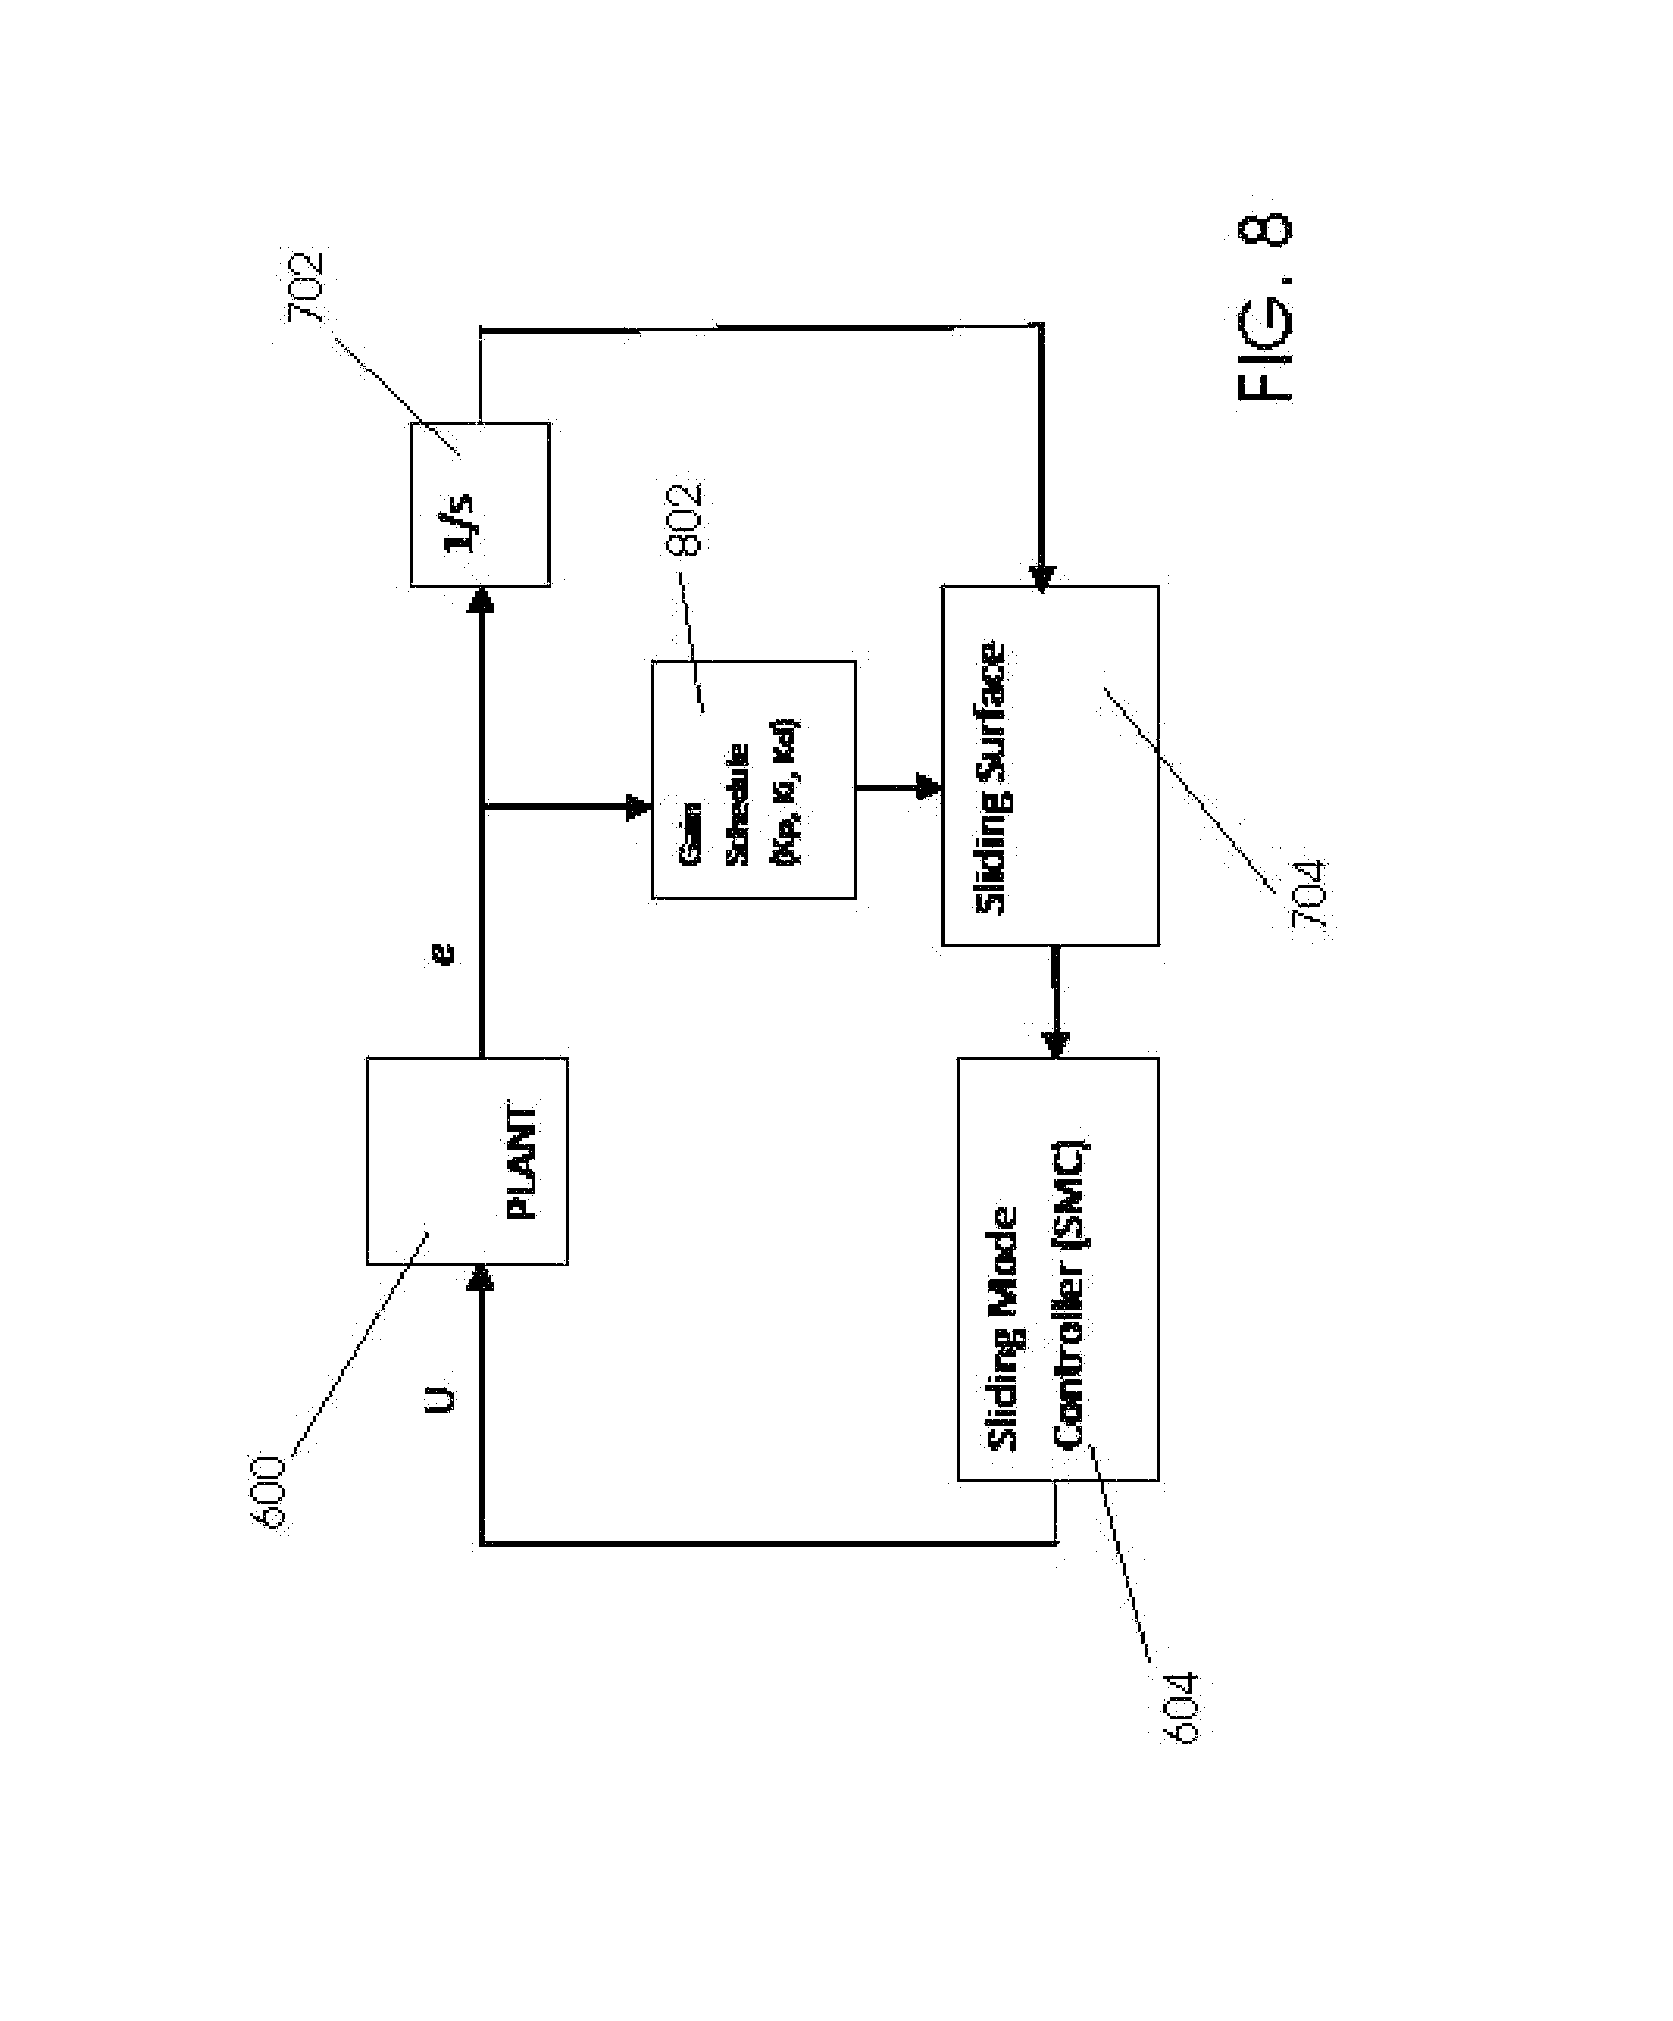 Patent Us20140277994 Sliding Mode Controller For Engine Thermal Smc Crossing Arm Wiring Diagram Drawing